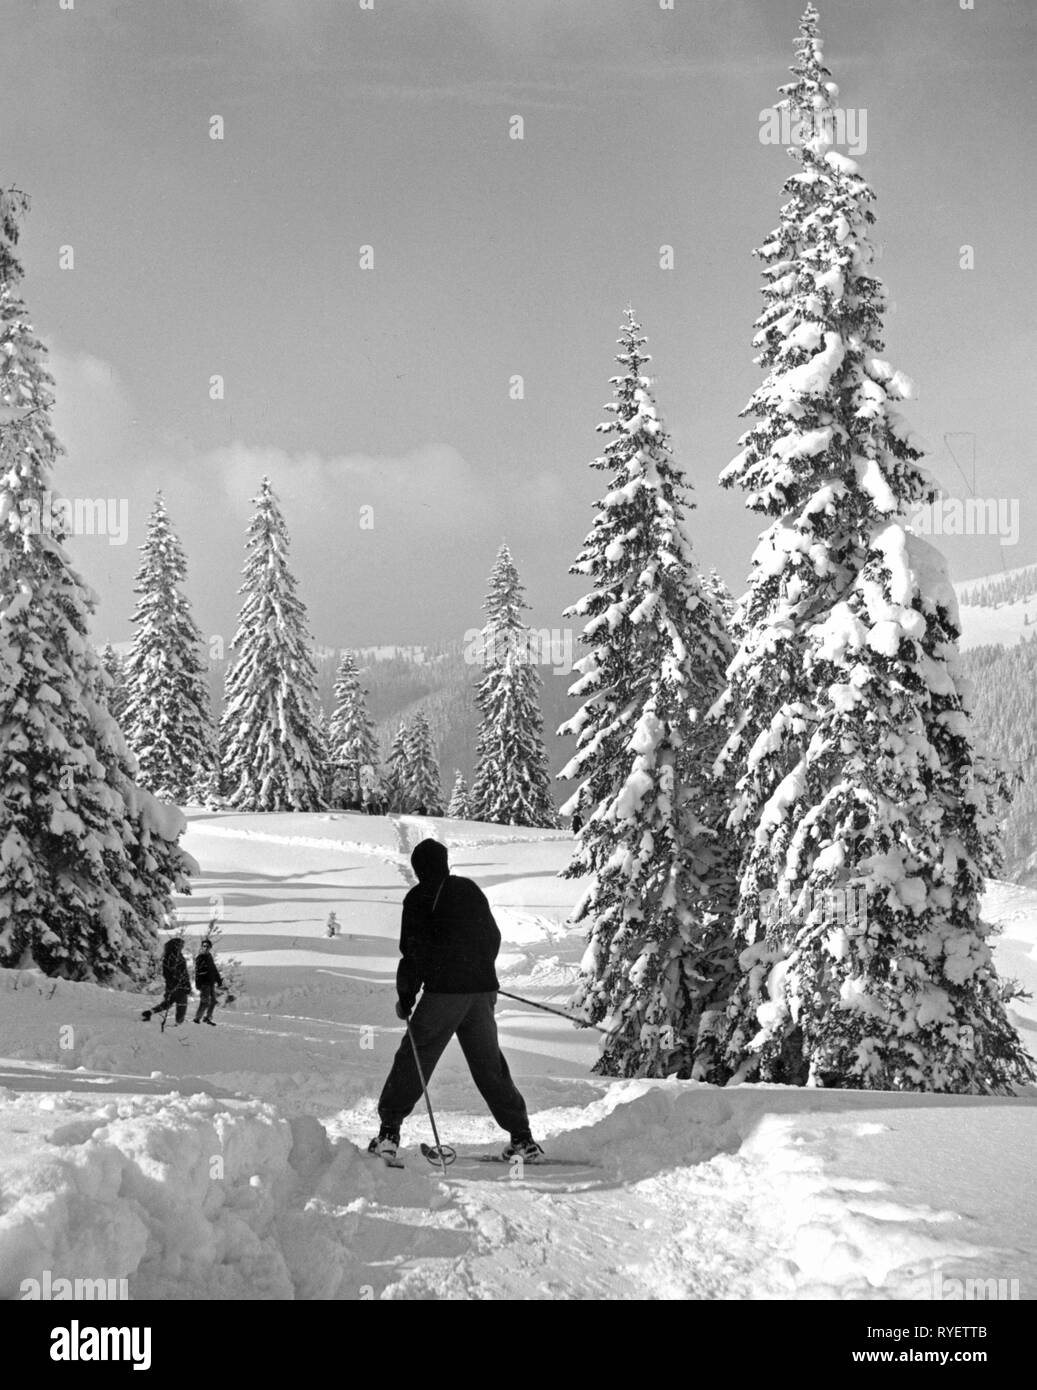 sports, winter sports, skiing, slowly downhill with snowplough turn, Feldberg, Black Forest, 1950s, Additional-Rights-Clearance-Info-Not-Available - Stock Image